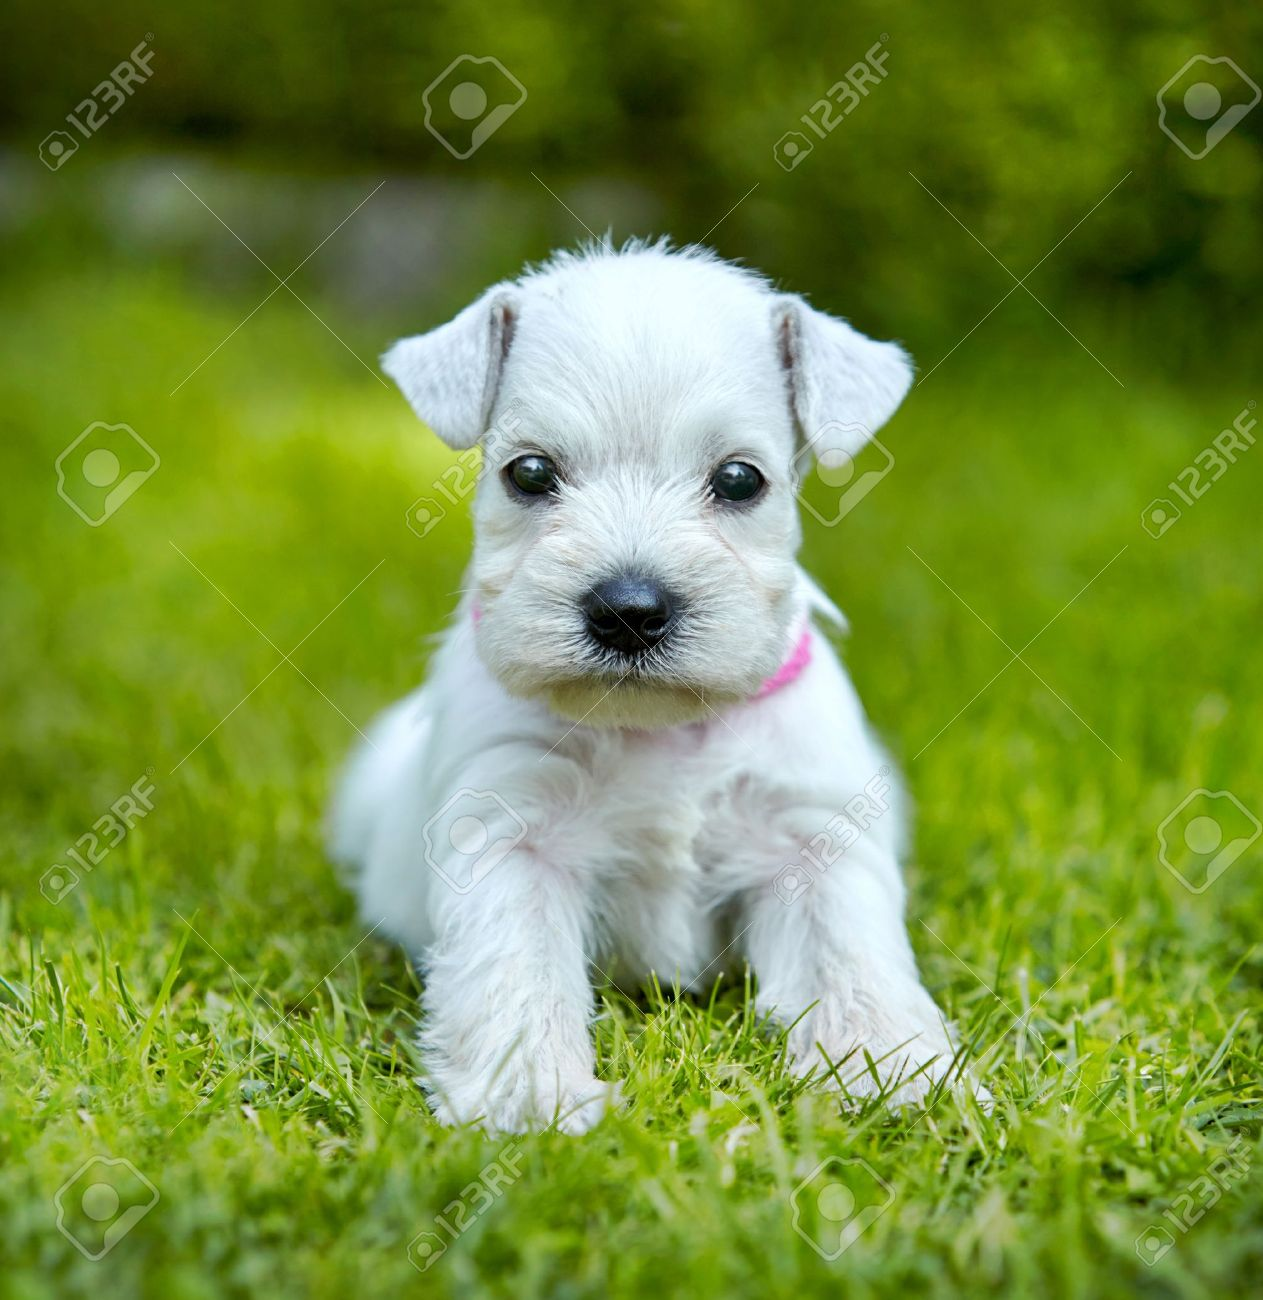 white schnauzer puppy in a green grass Stock Photo - 21377766